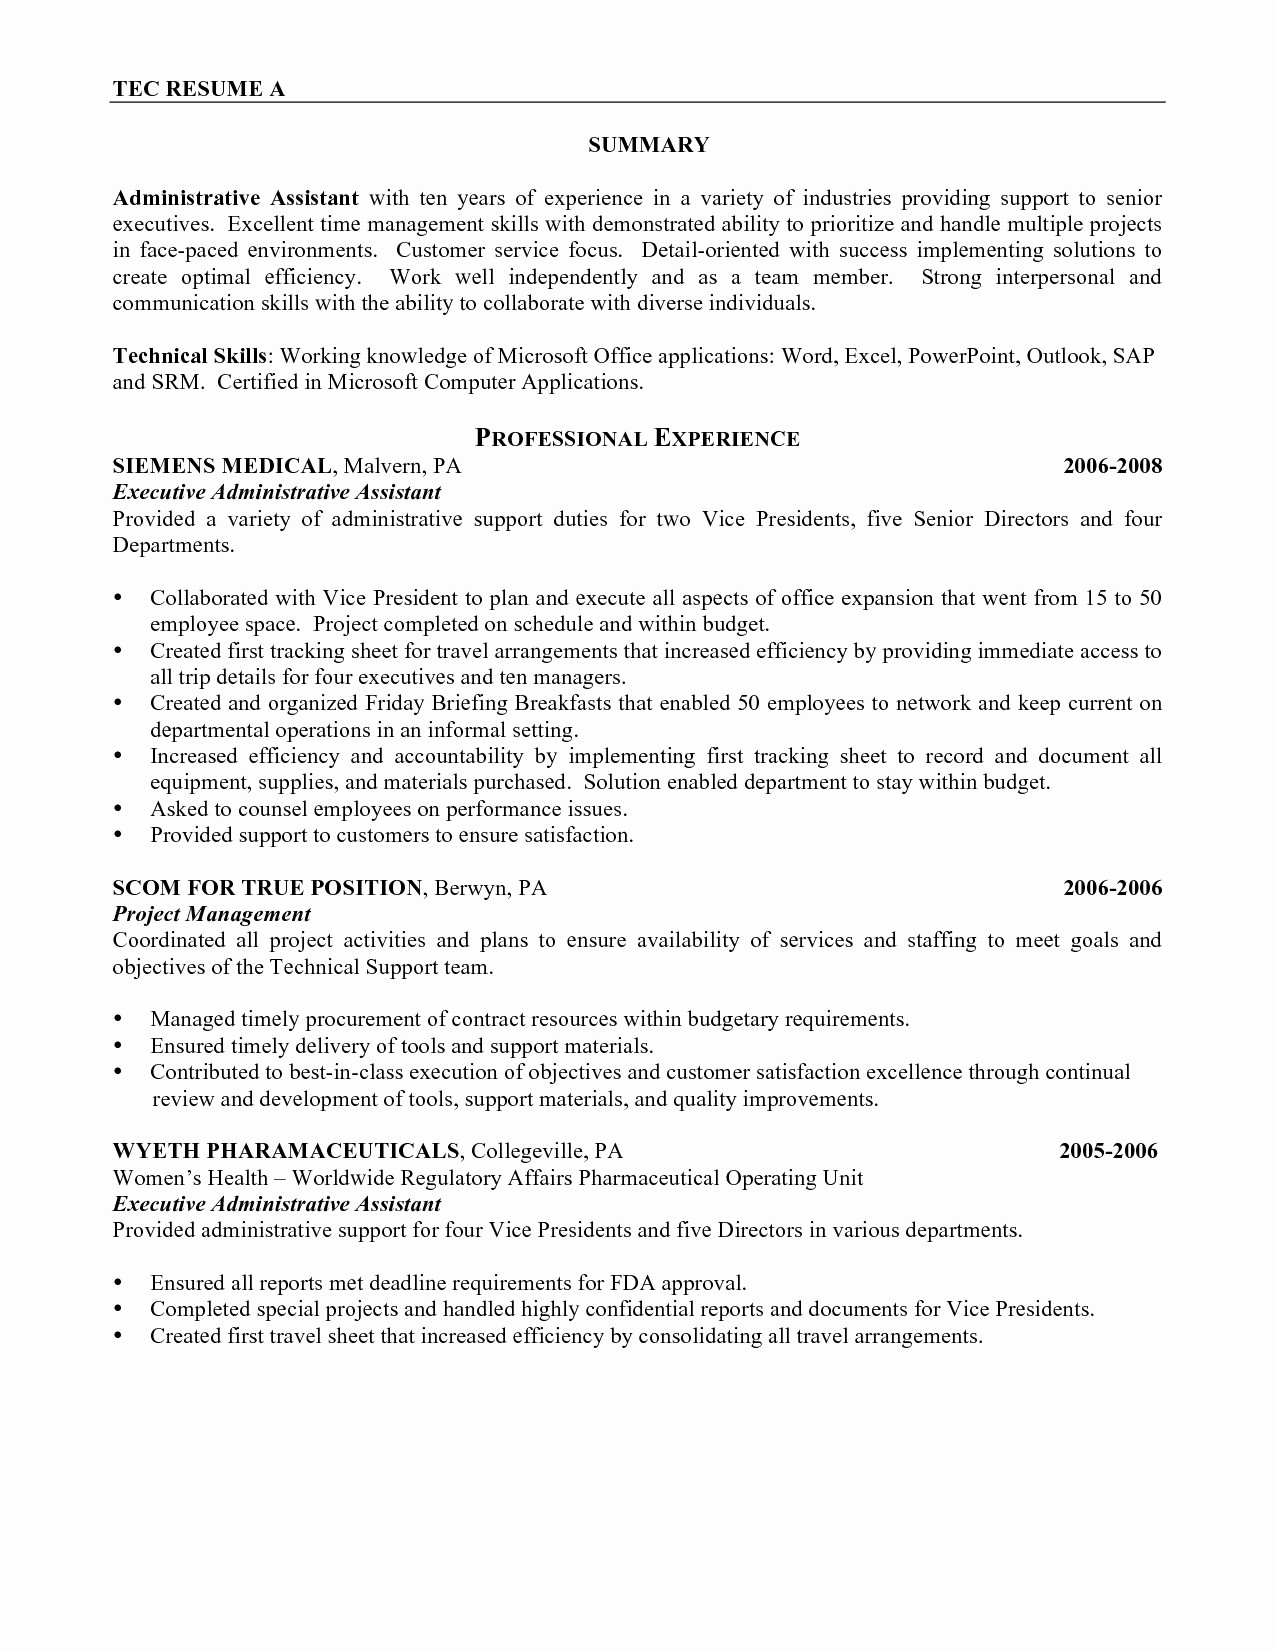 Senior Executive Resume Examples - Sample Good Resume Beautiful Resume Paper Sample Tickets